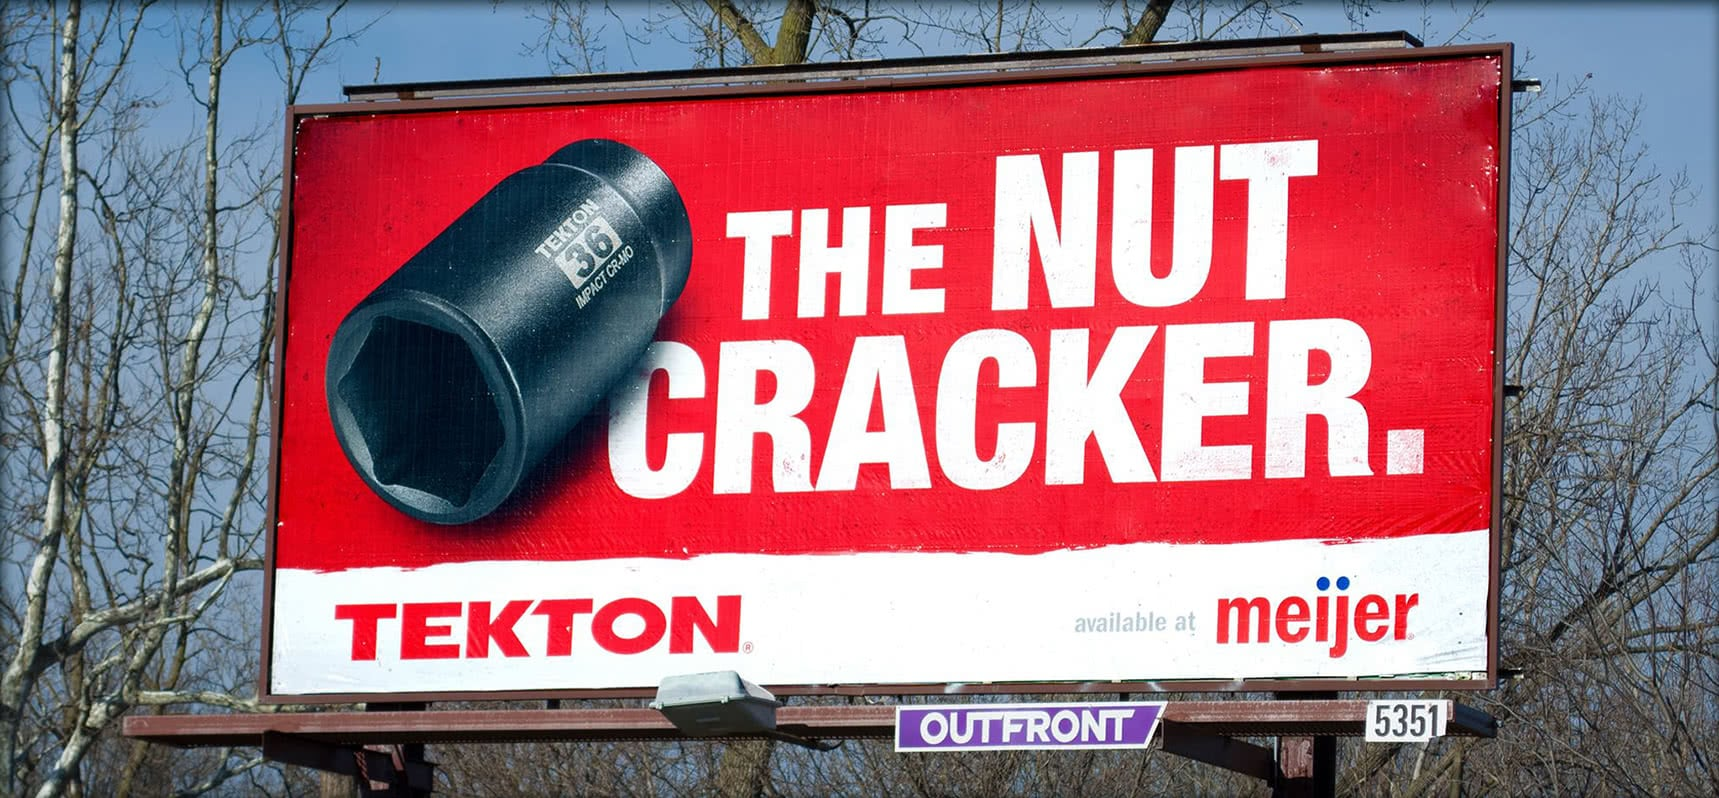 Meijer - The Nut Cracker Billboard